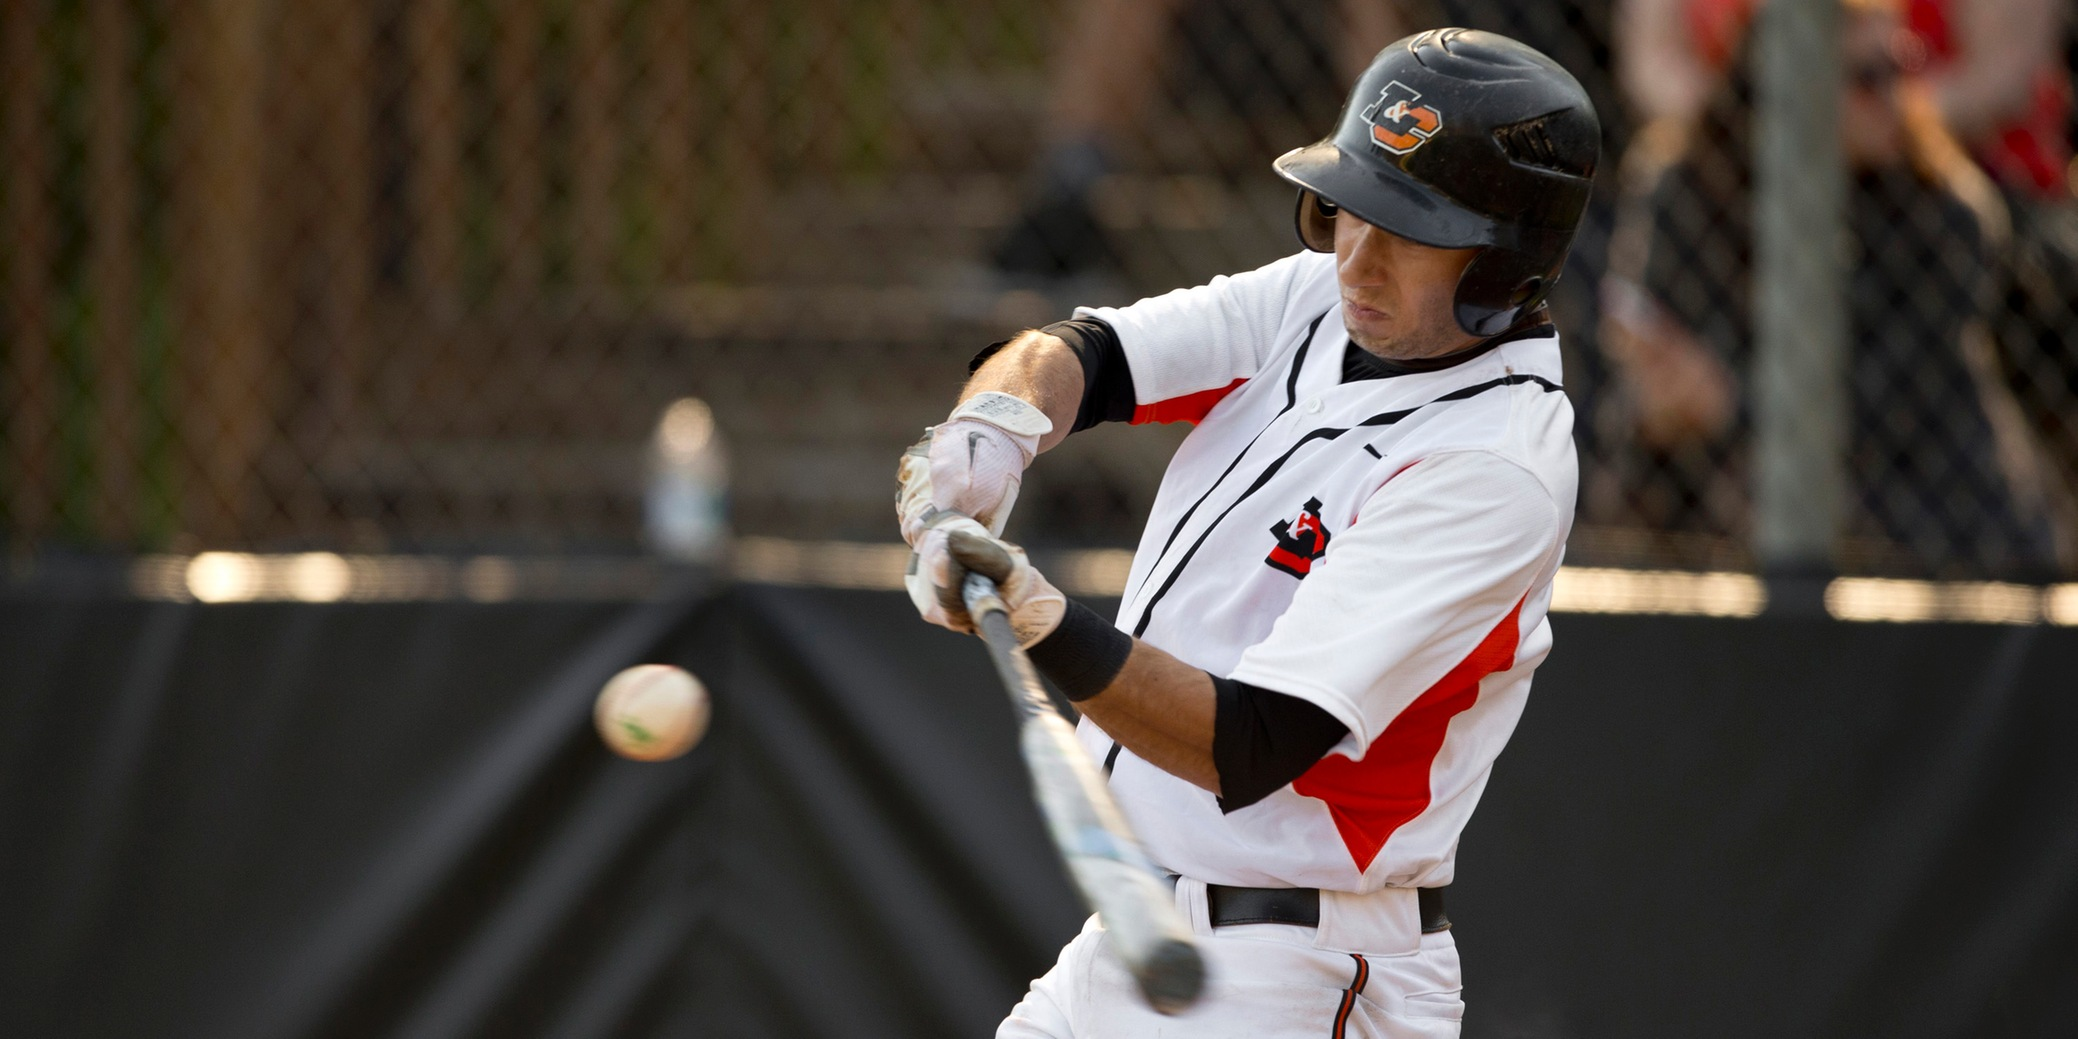 Lewis & Clark defeated in opener despite totaling 14 hits; Game 2 postponed